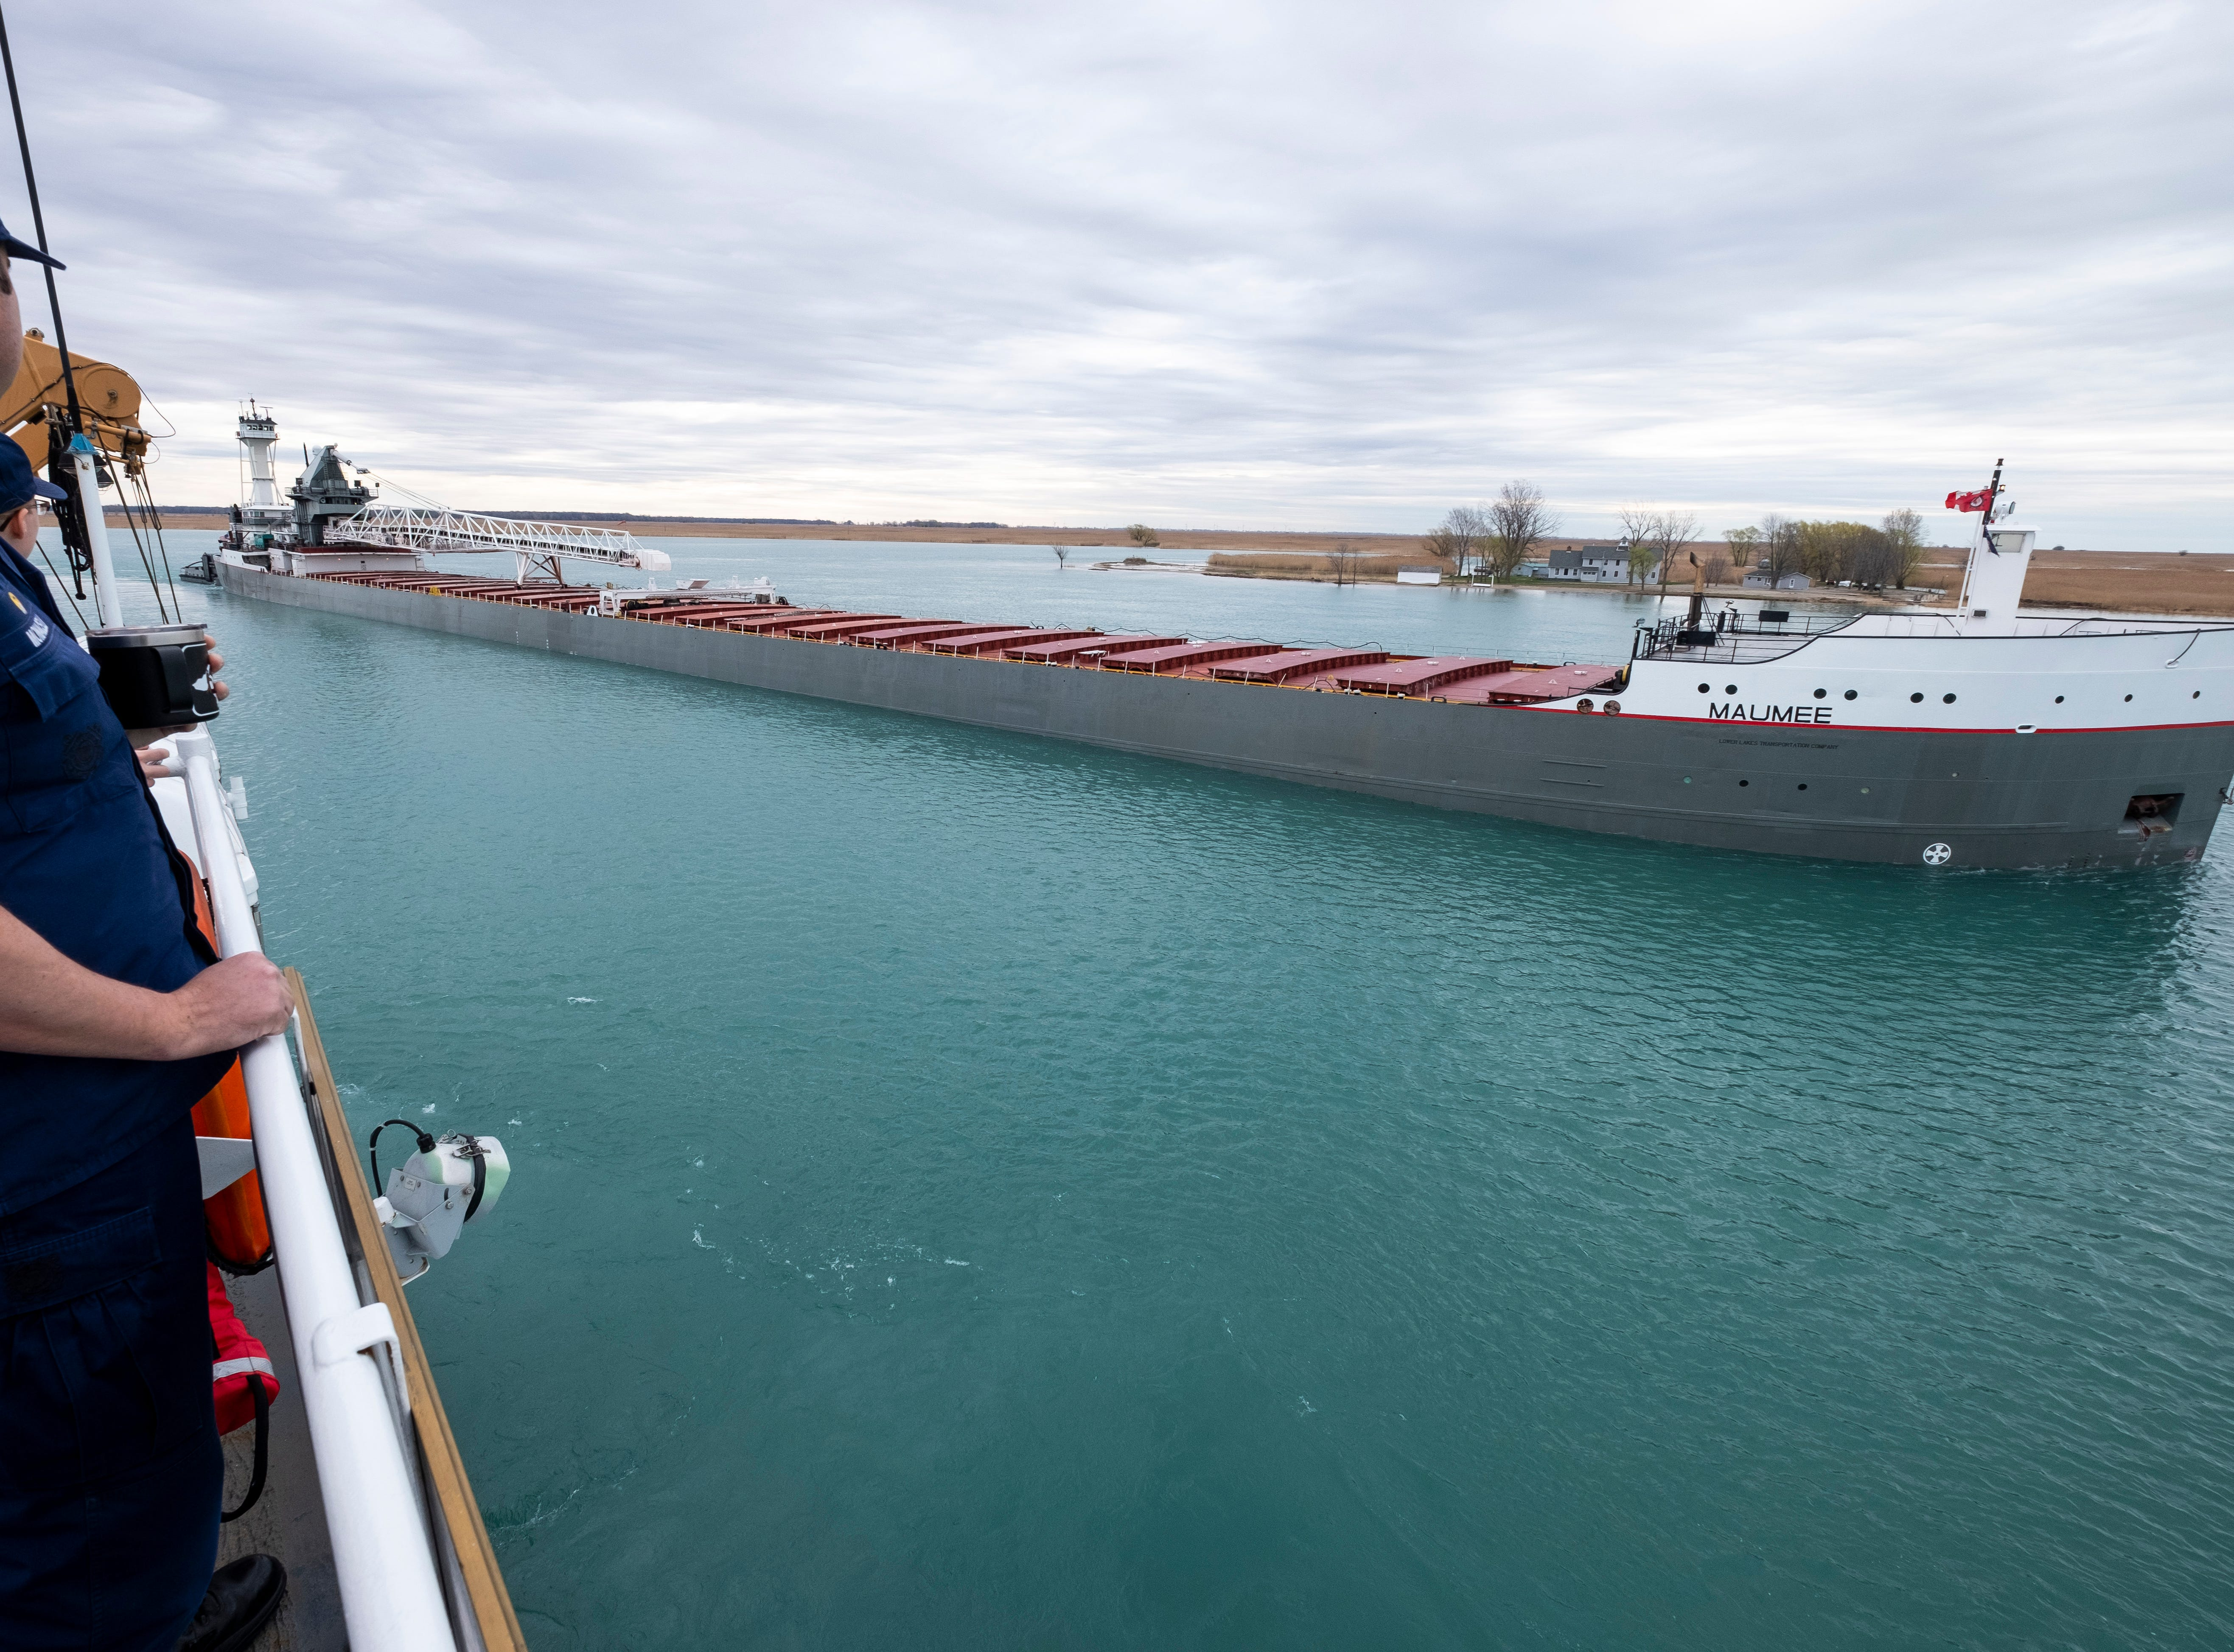 U.S. Coast Guard Lt. Cmdr. Nick Monacelli watches as the Maumee barge, pushed by the tug Victory, passes the USCGC Hollyhock Thursday, April 25, 2019 on the southern end of the St. Clair River.